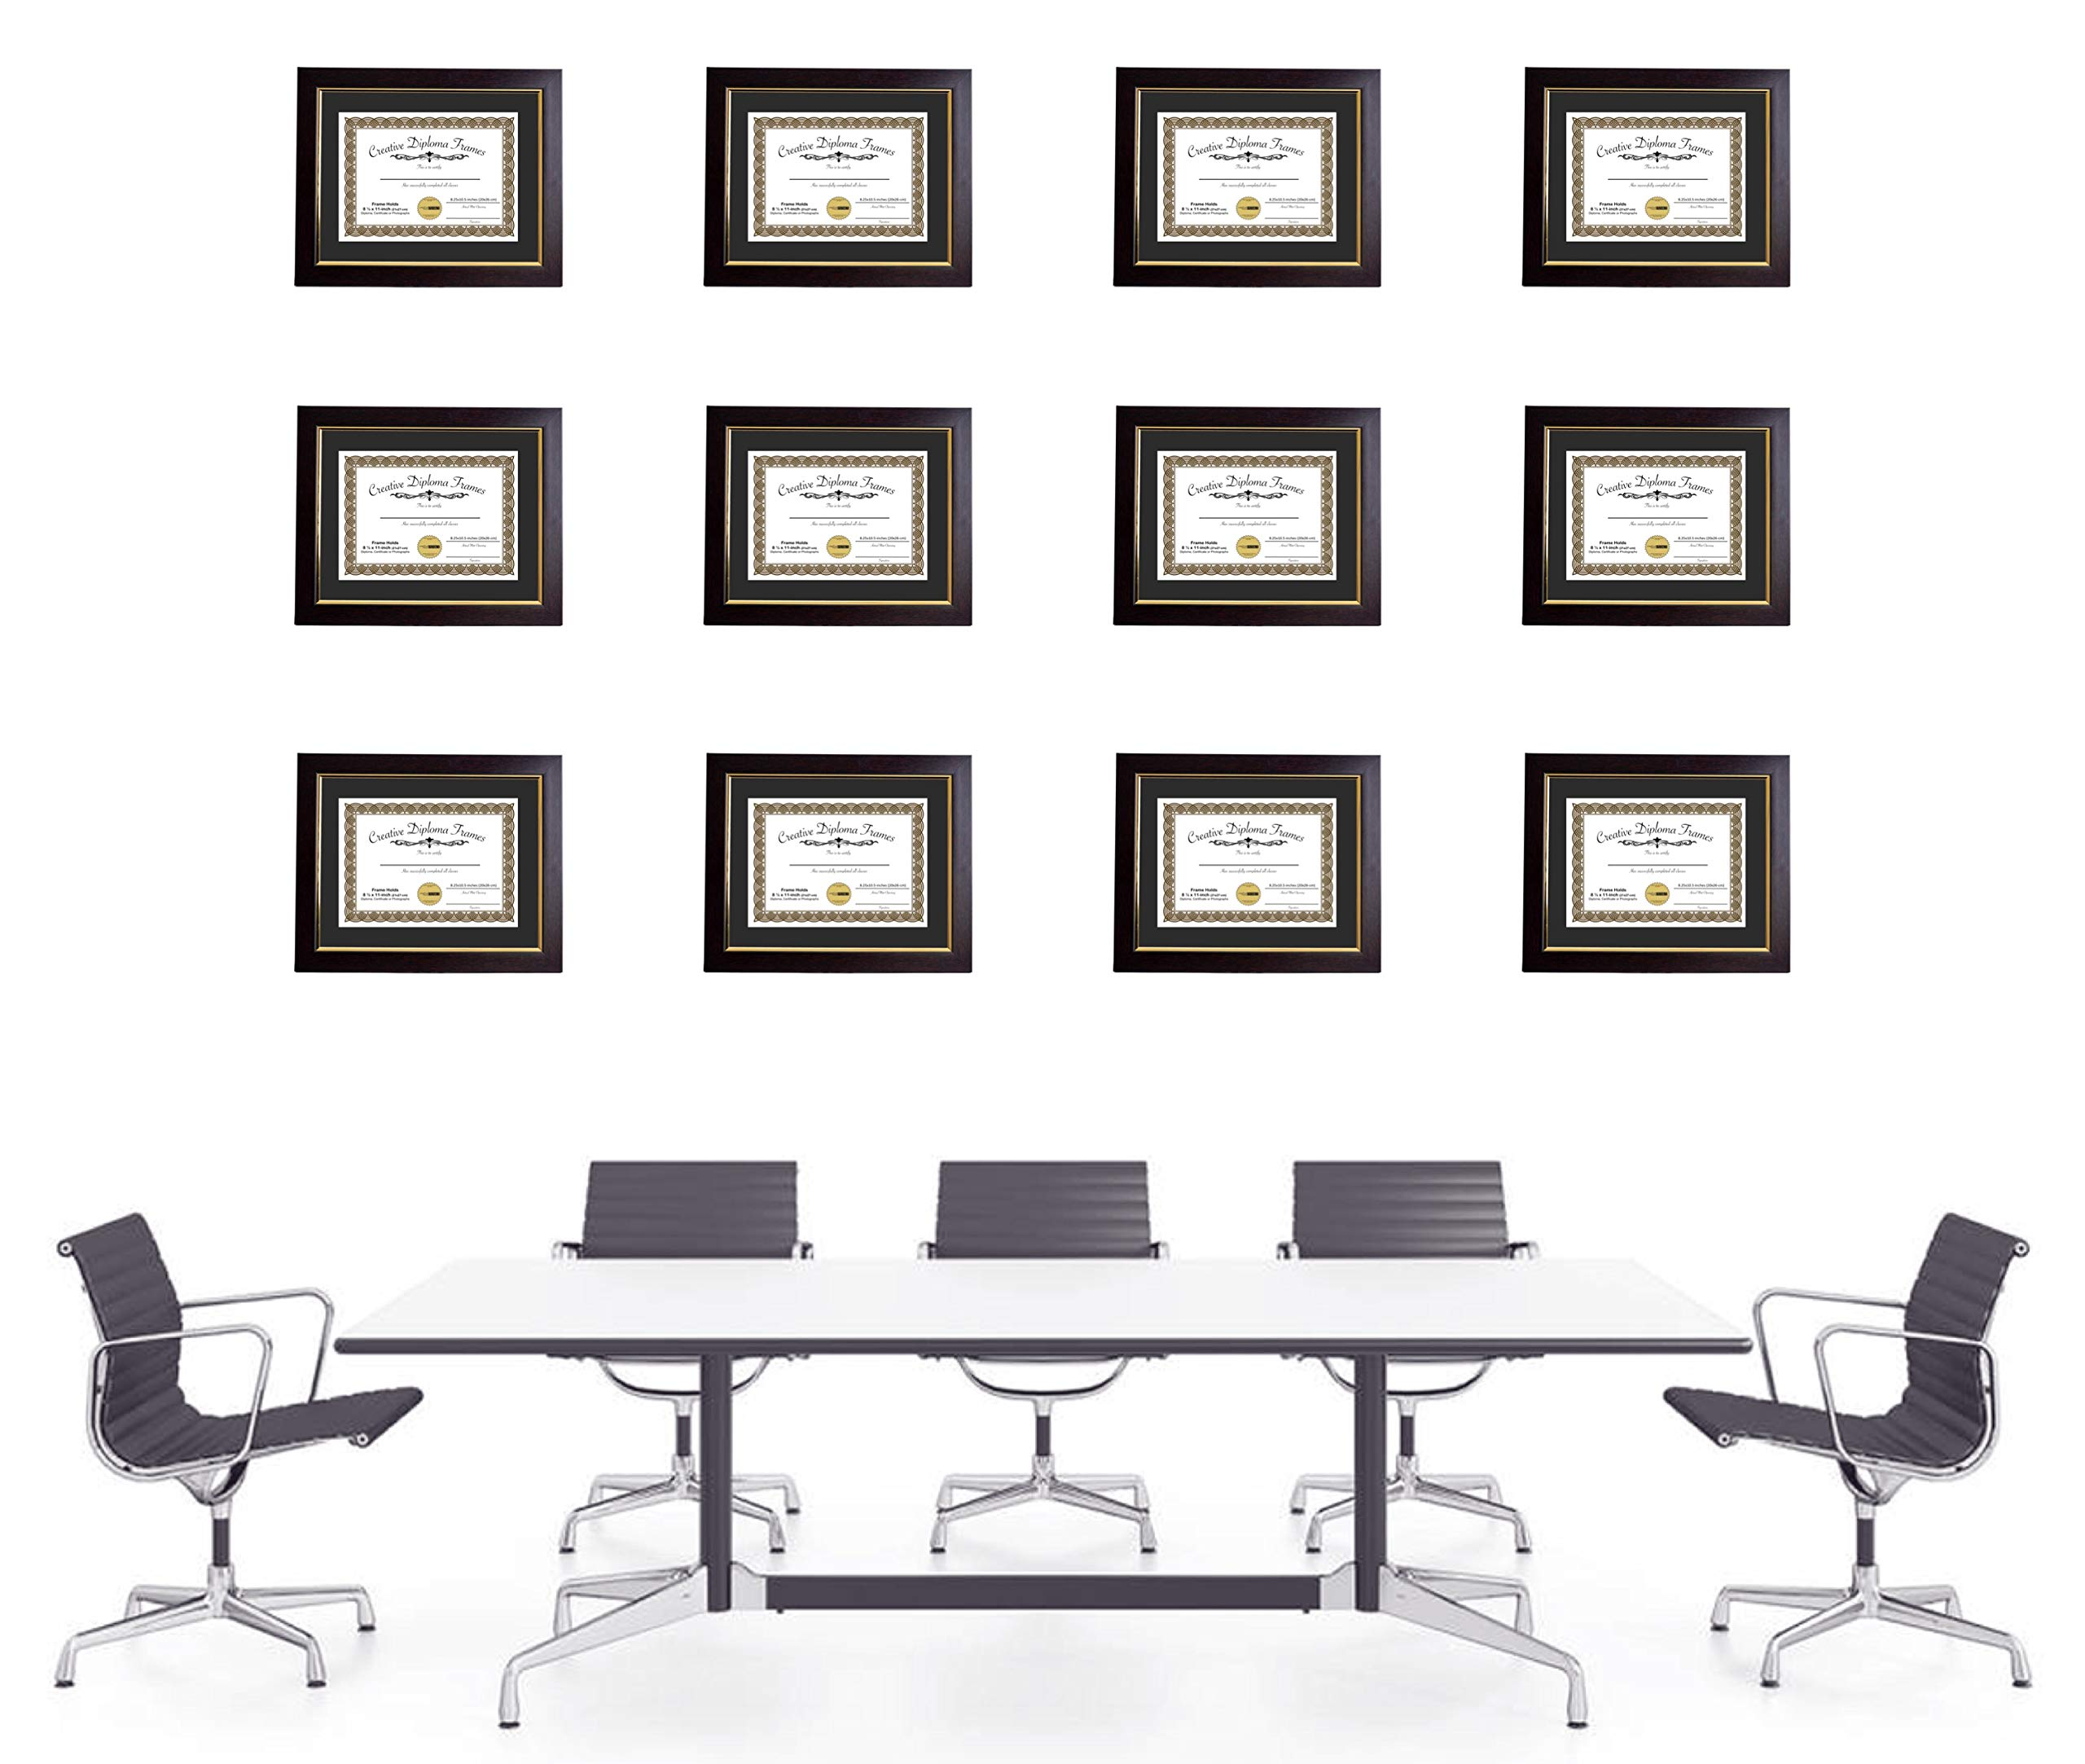 CreativePF [mhg024] 11x14-inch Matted Eco Mahogany Diploma Frame Gold Lip with Black/White Core Mat Holds 8.5x11-inch Media, with Installed Hangers (4-Pack) by Creative Picture Frames (Image #6)